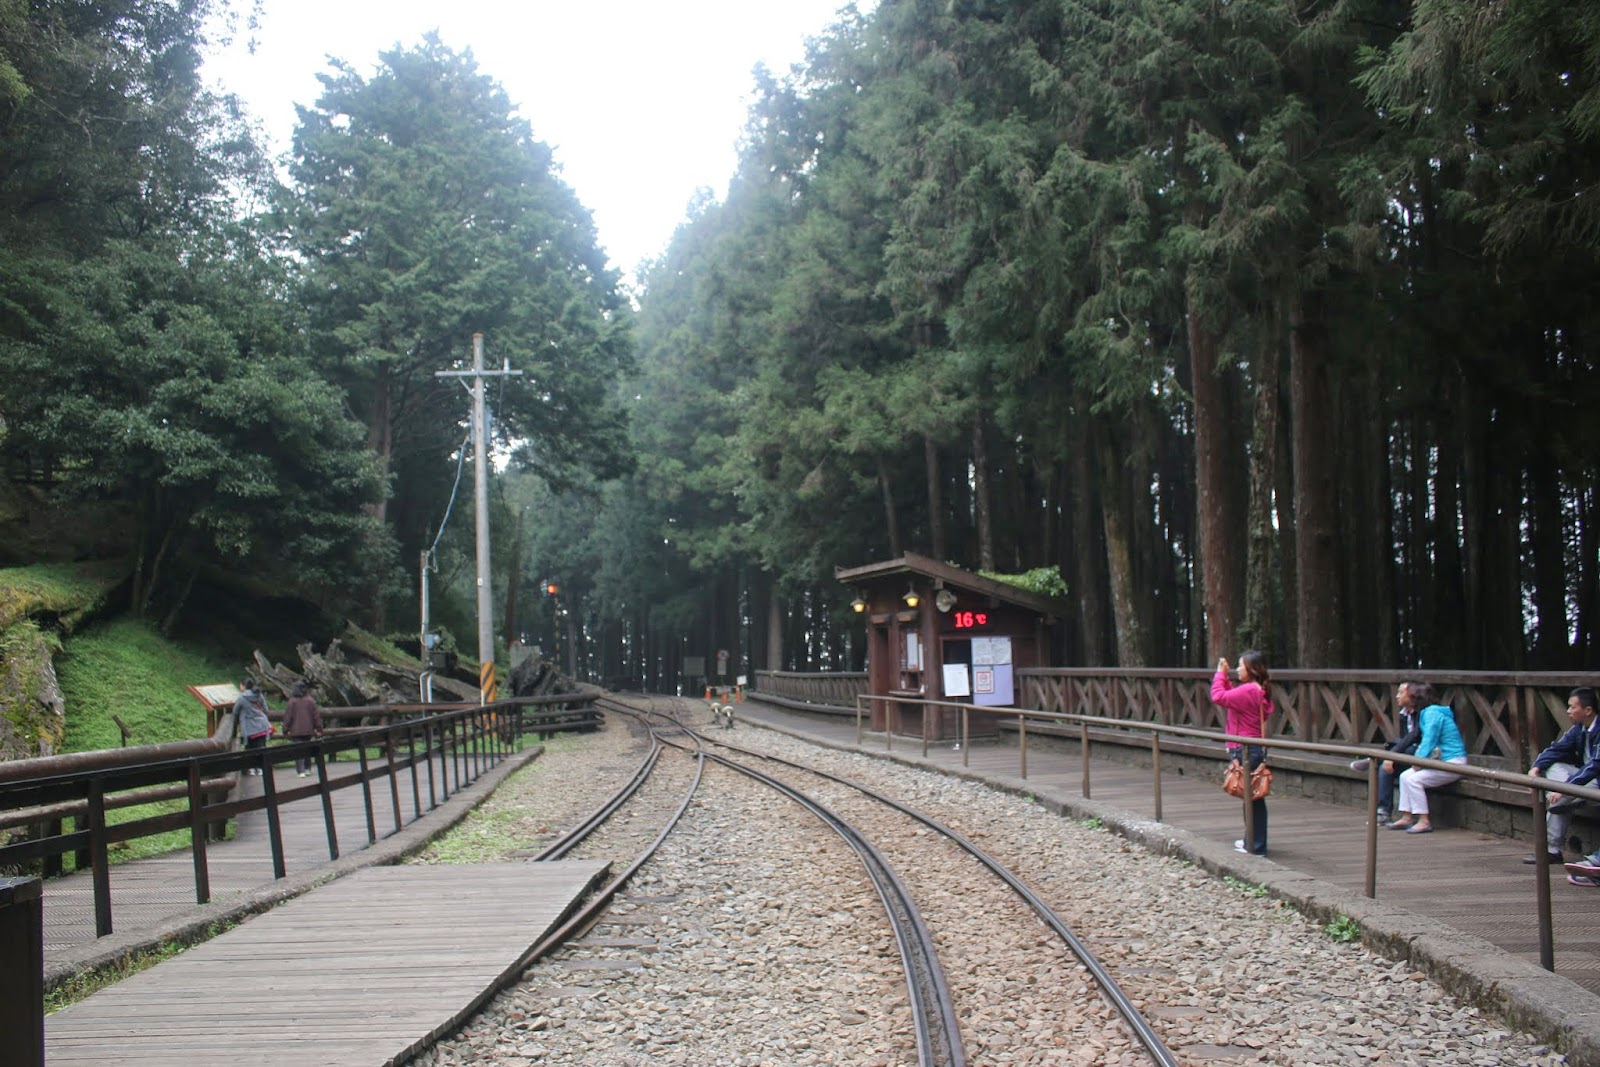 Waiting for the train back to the main station of Forest Railway Alishan Station at Alishan Mountain in Chiayi County of Taiwan